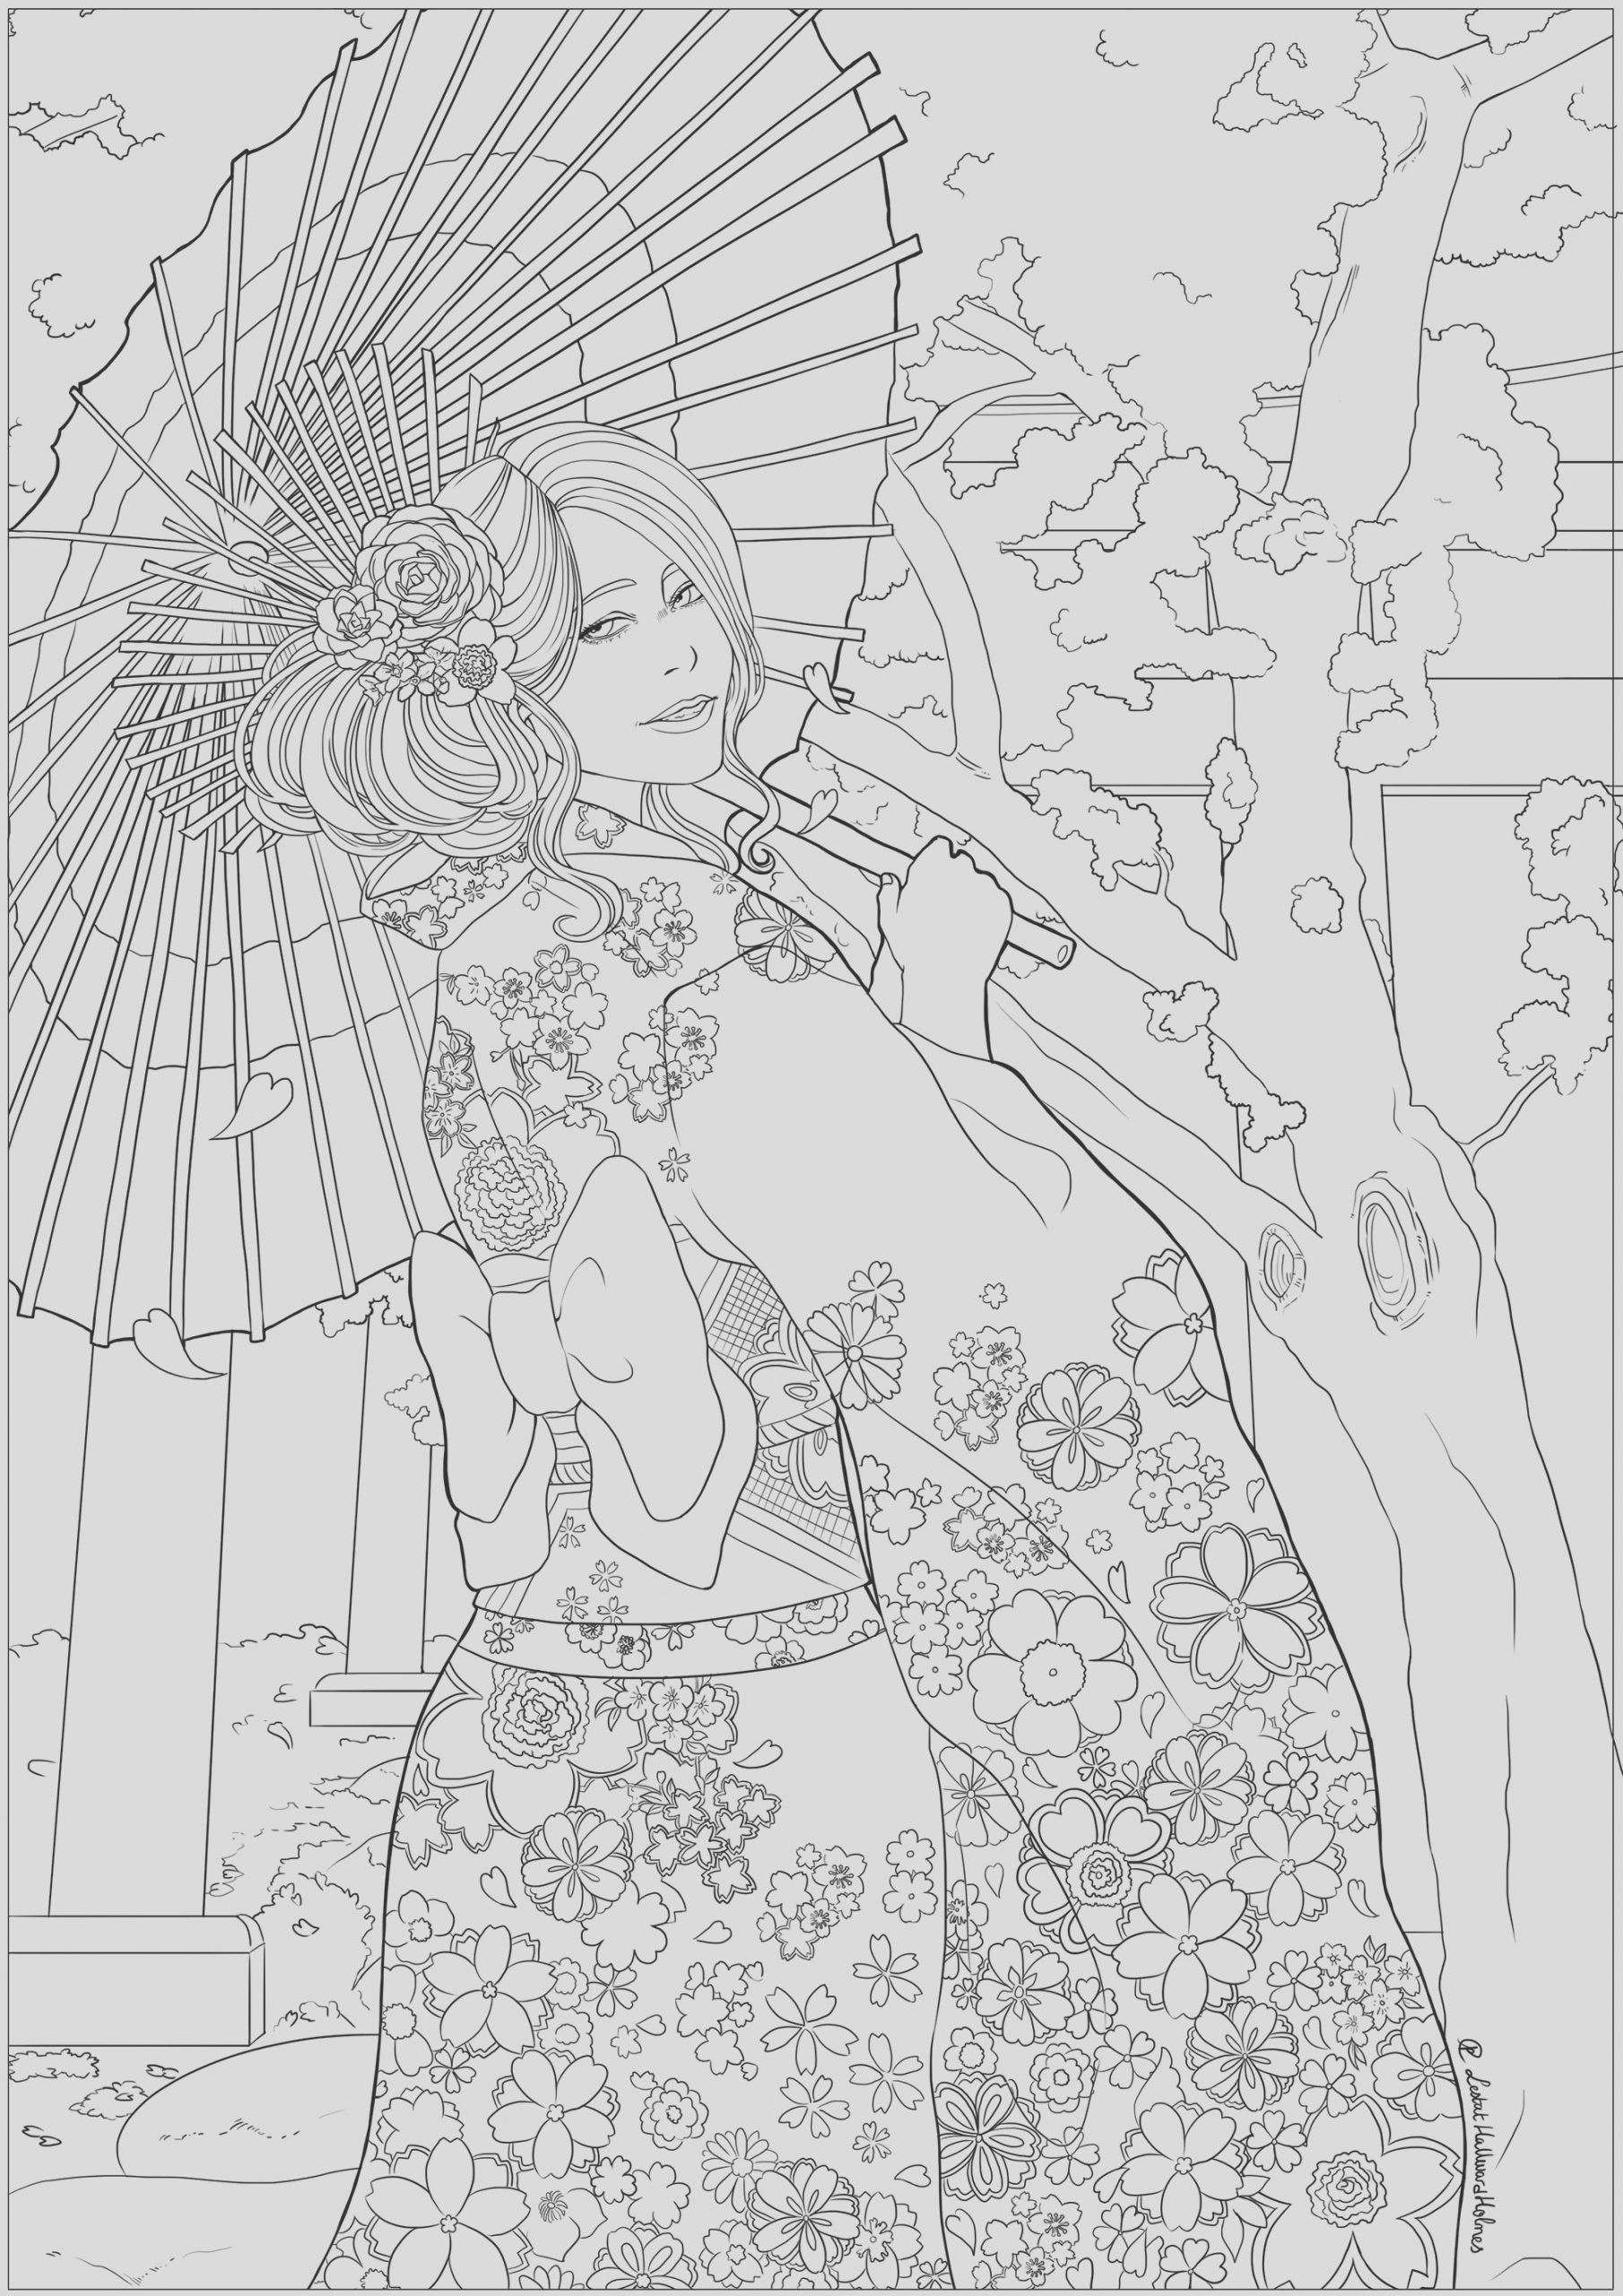 image=japan coloring elegant woman in japan 1